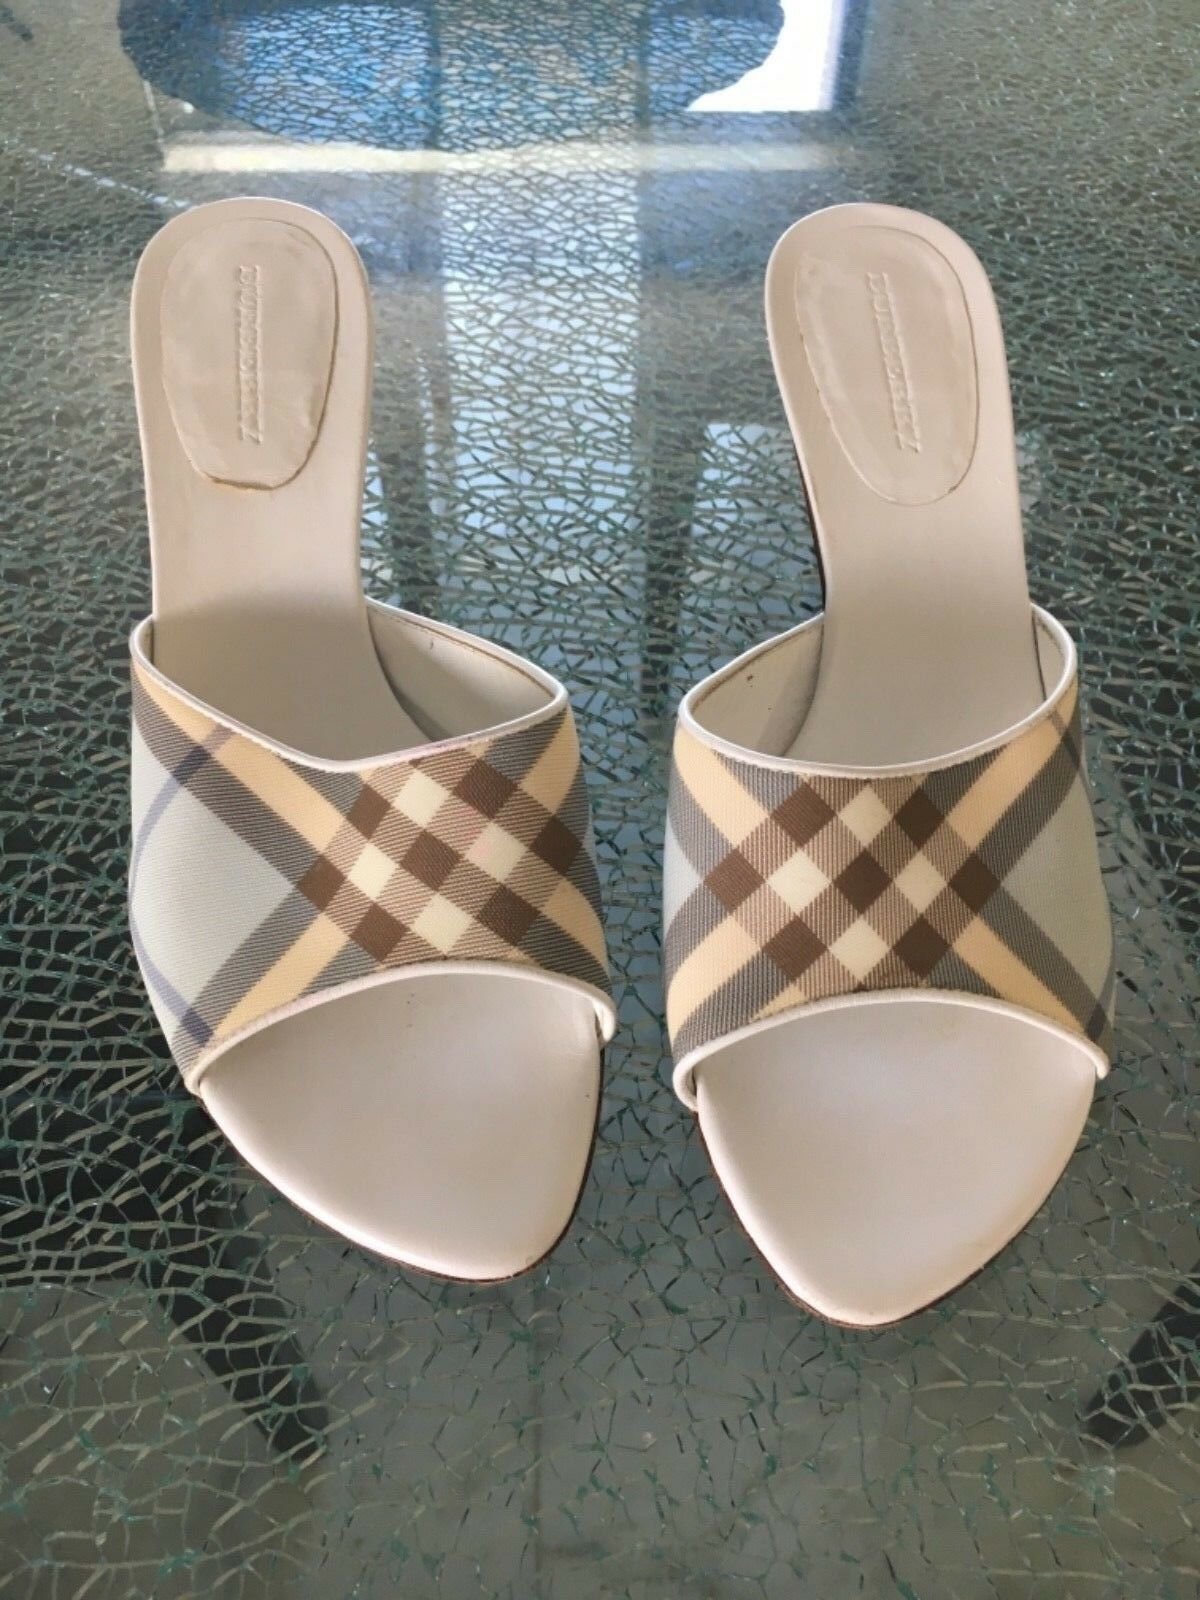 BURBERRY High Heels Taille 9.5 US blanc and Pale bleu